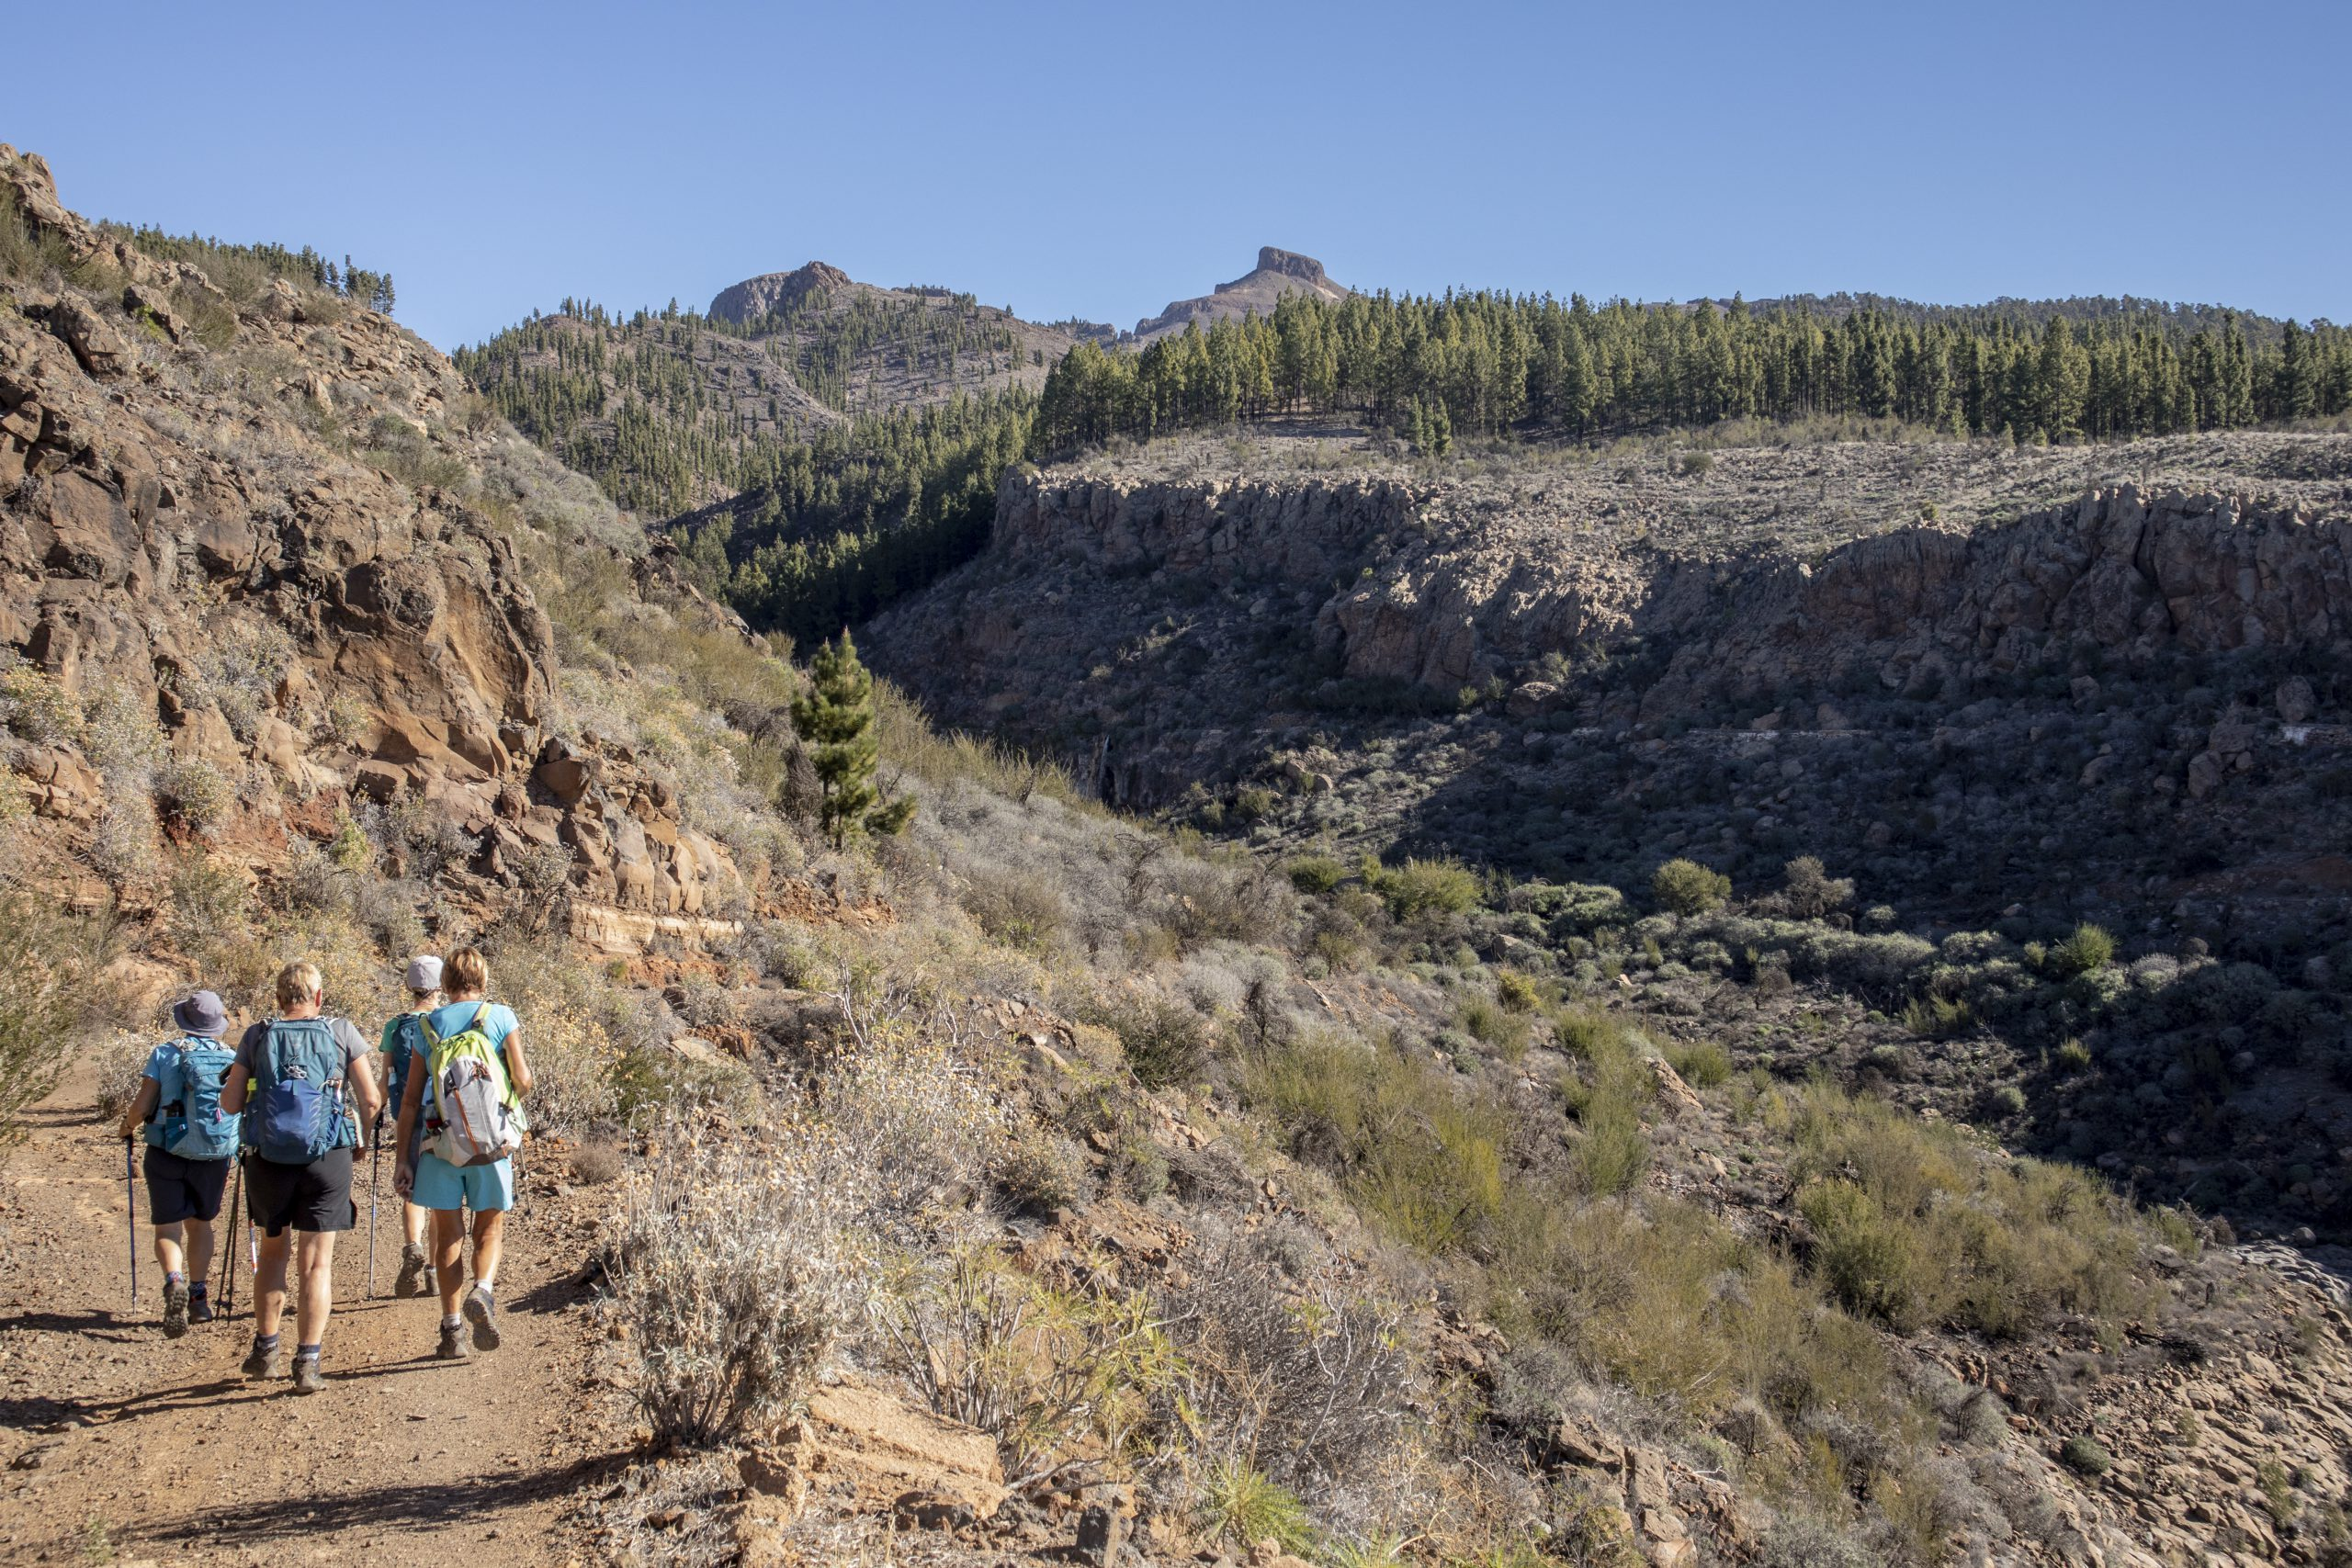 Women hikers on the trail near the waterfall